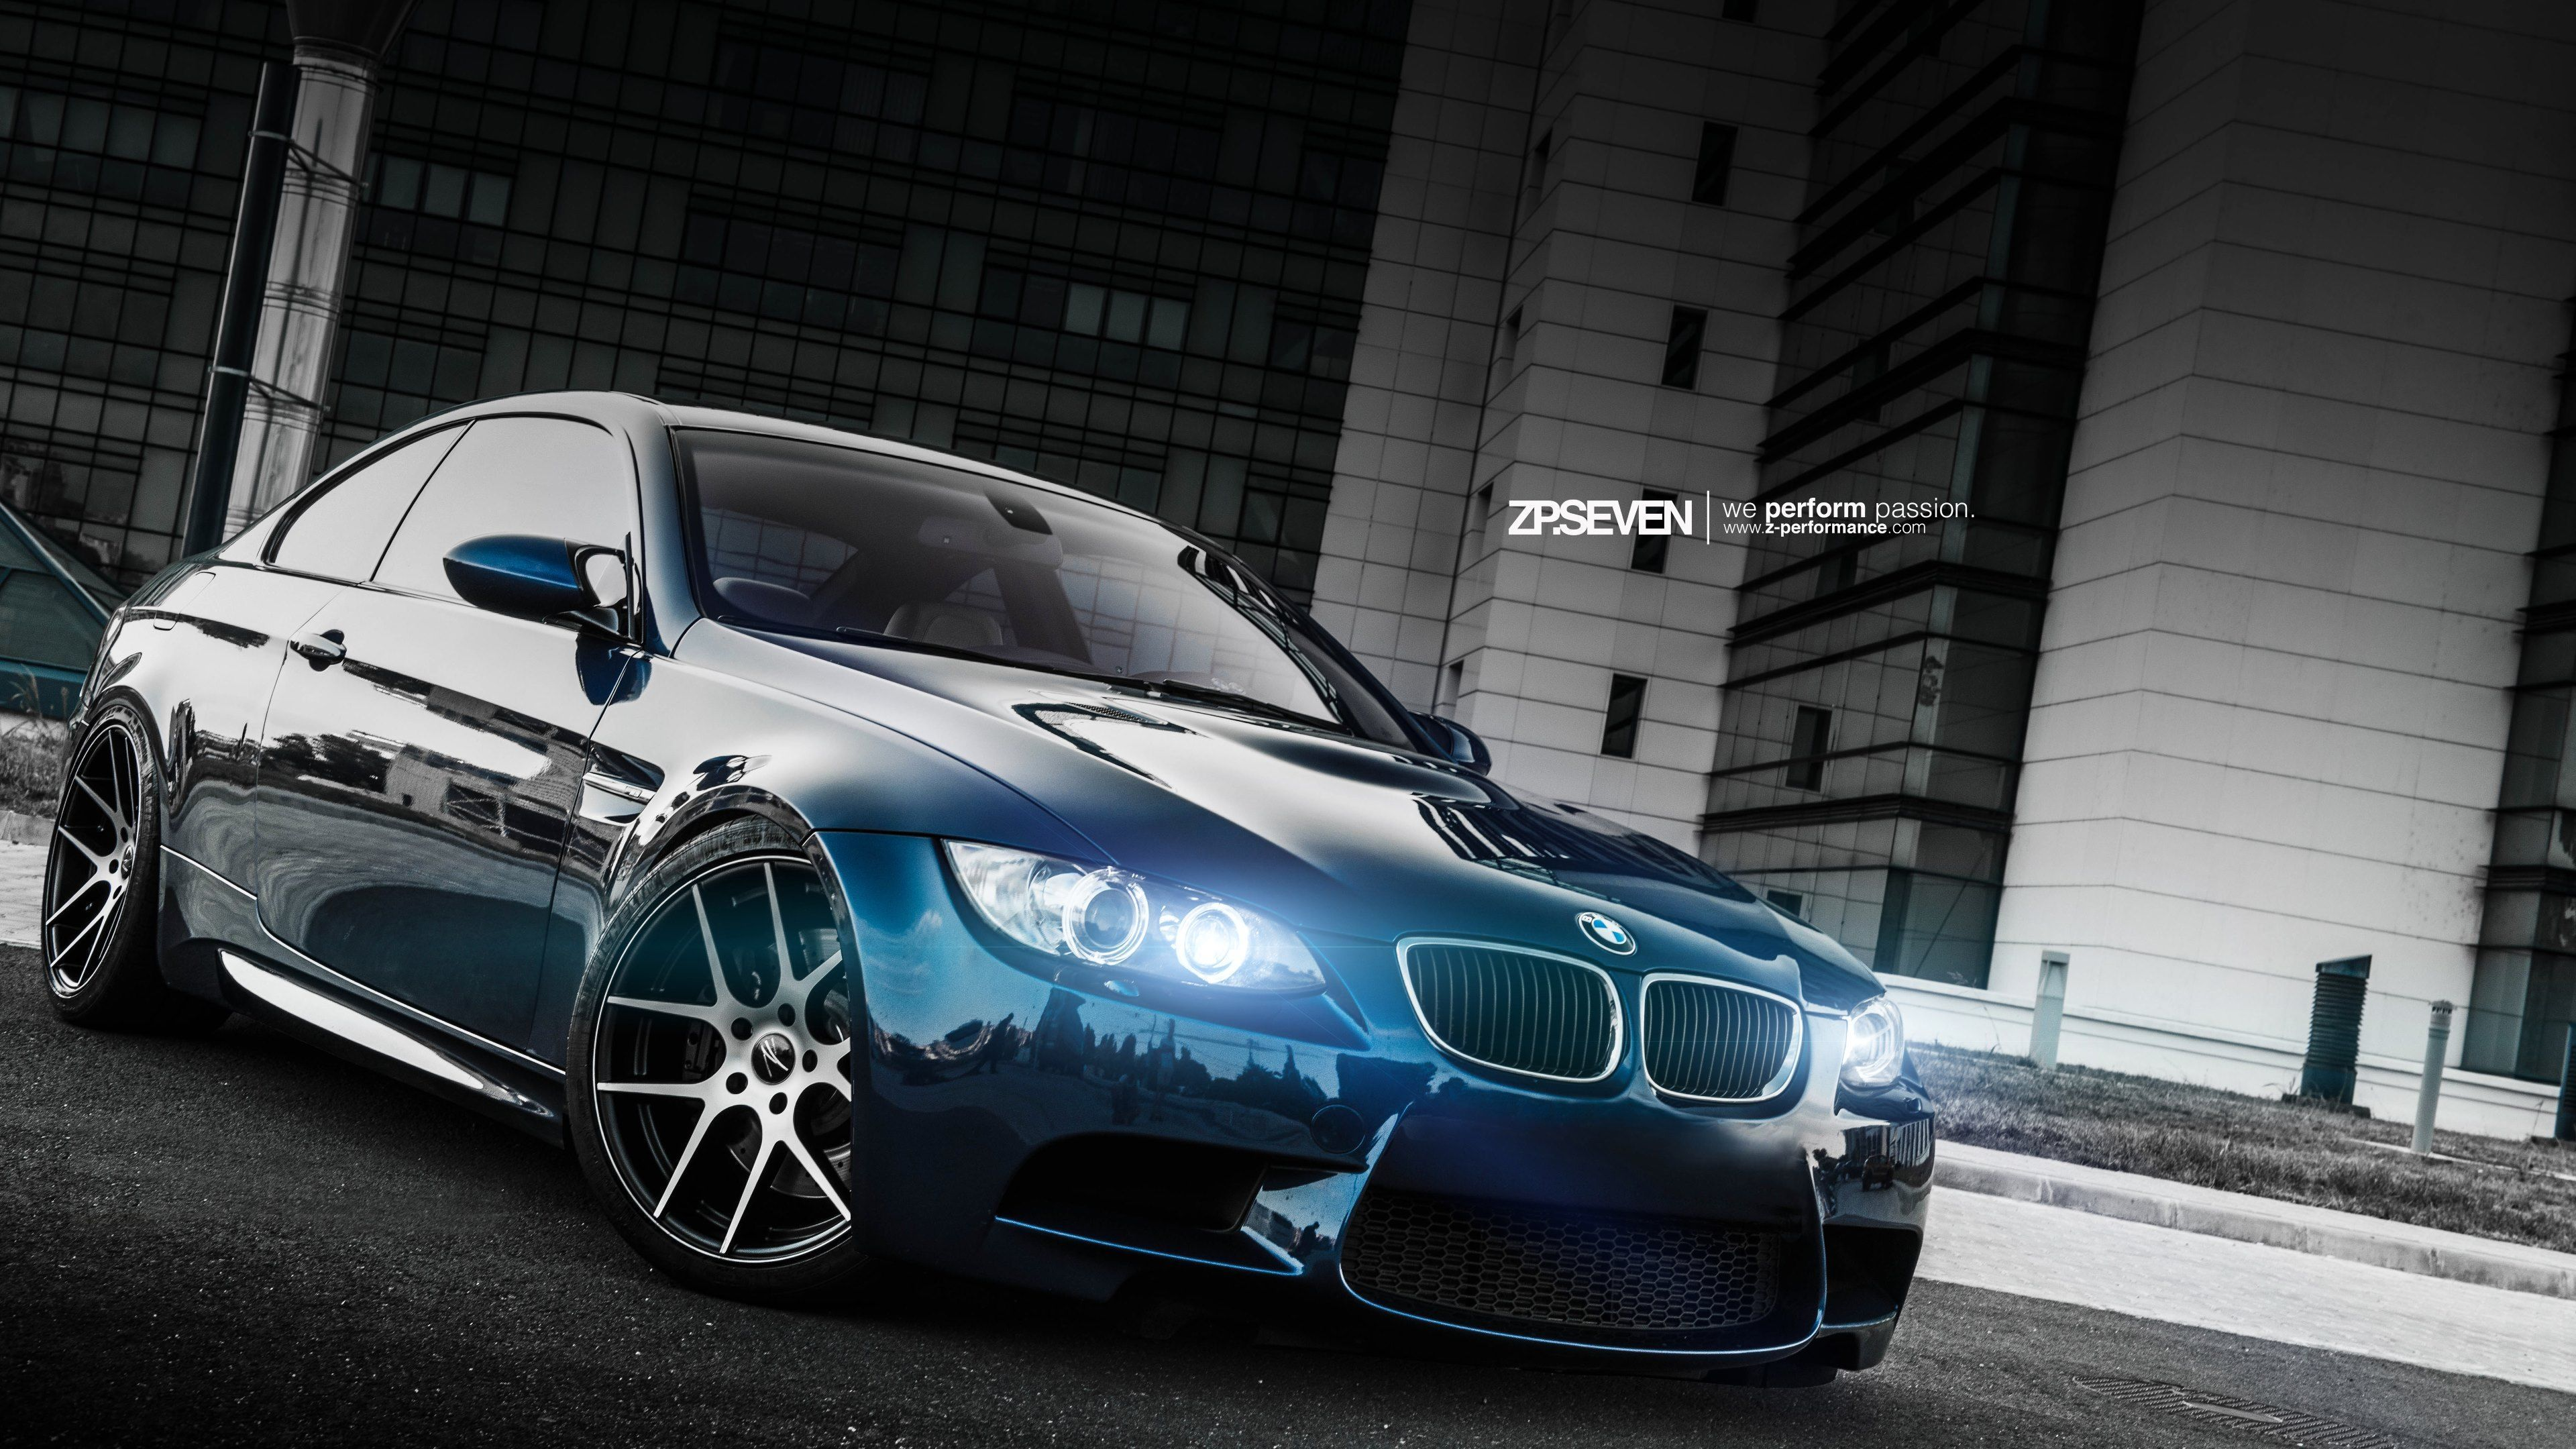 Hot BMW M3 Ultra Hd Wallpapers   Ultra High Definition Wallpapers .